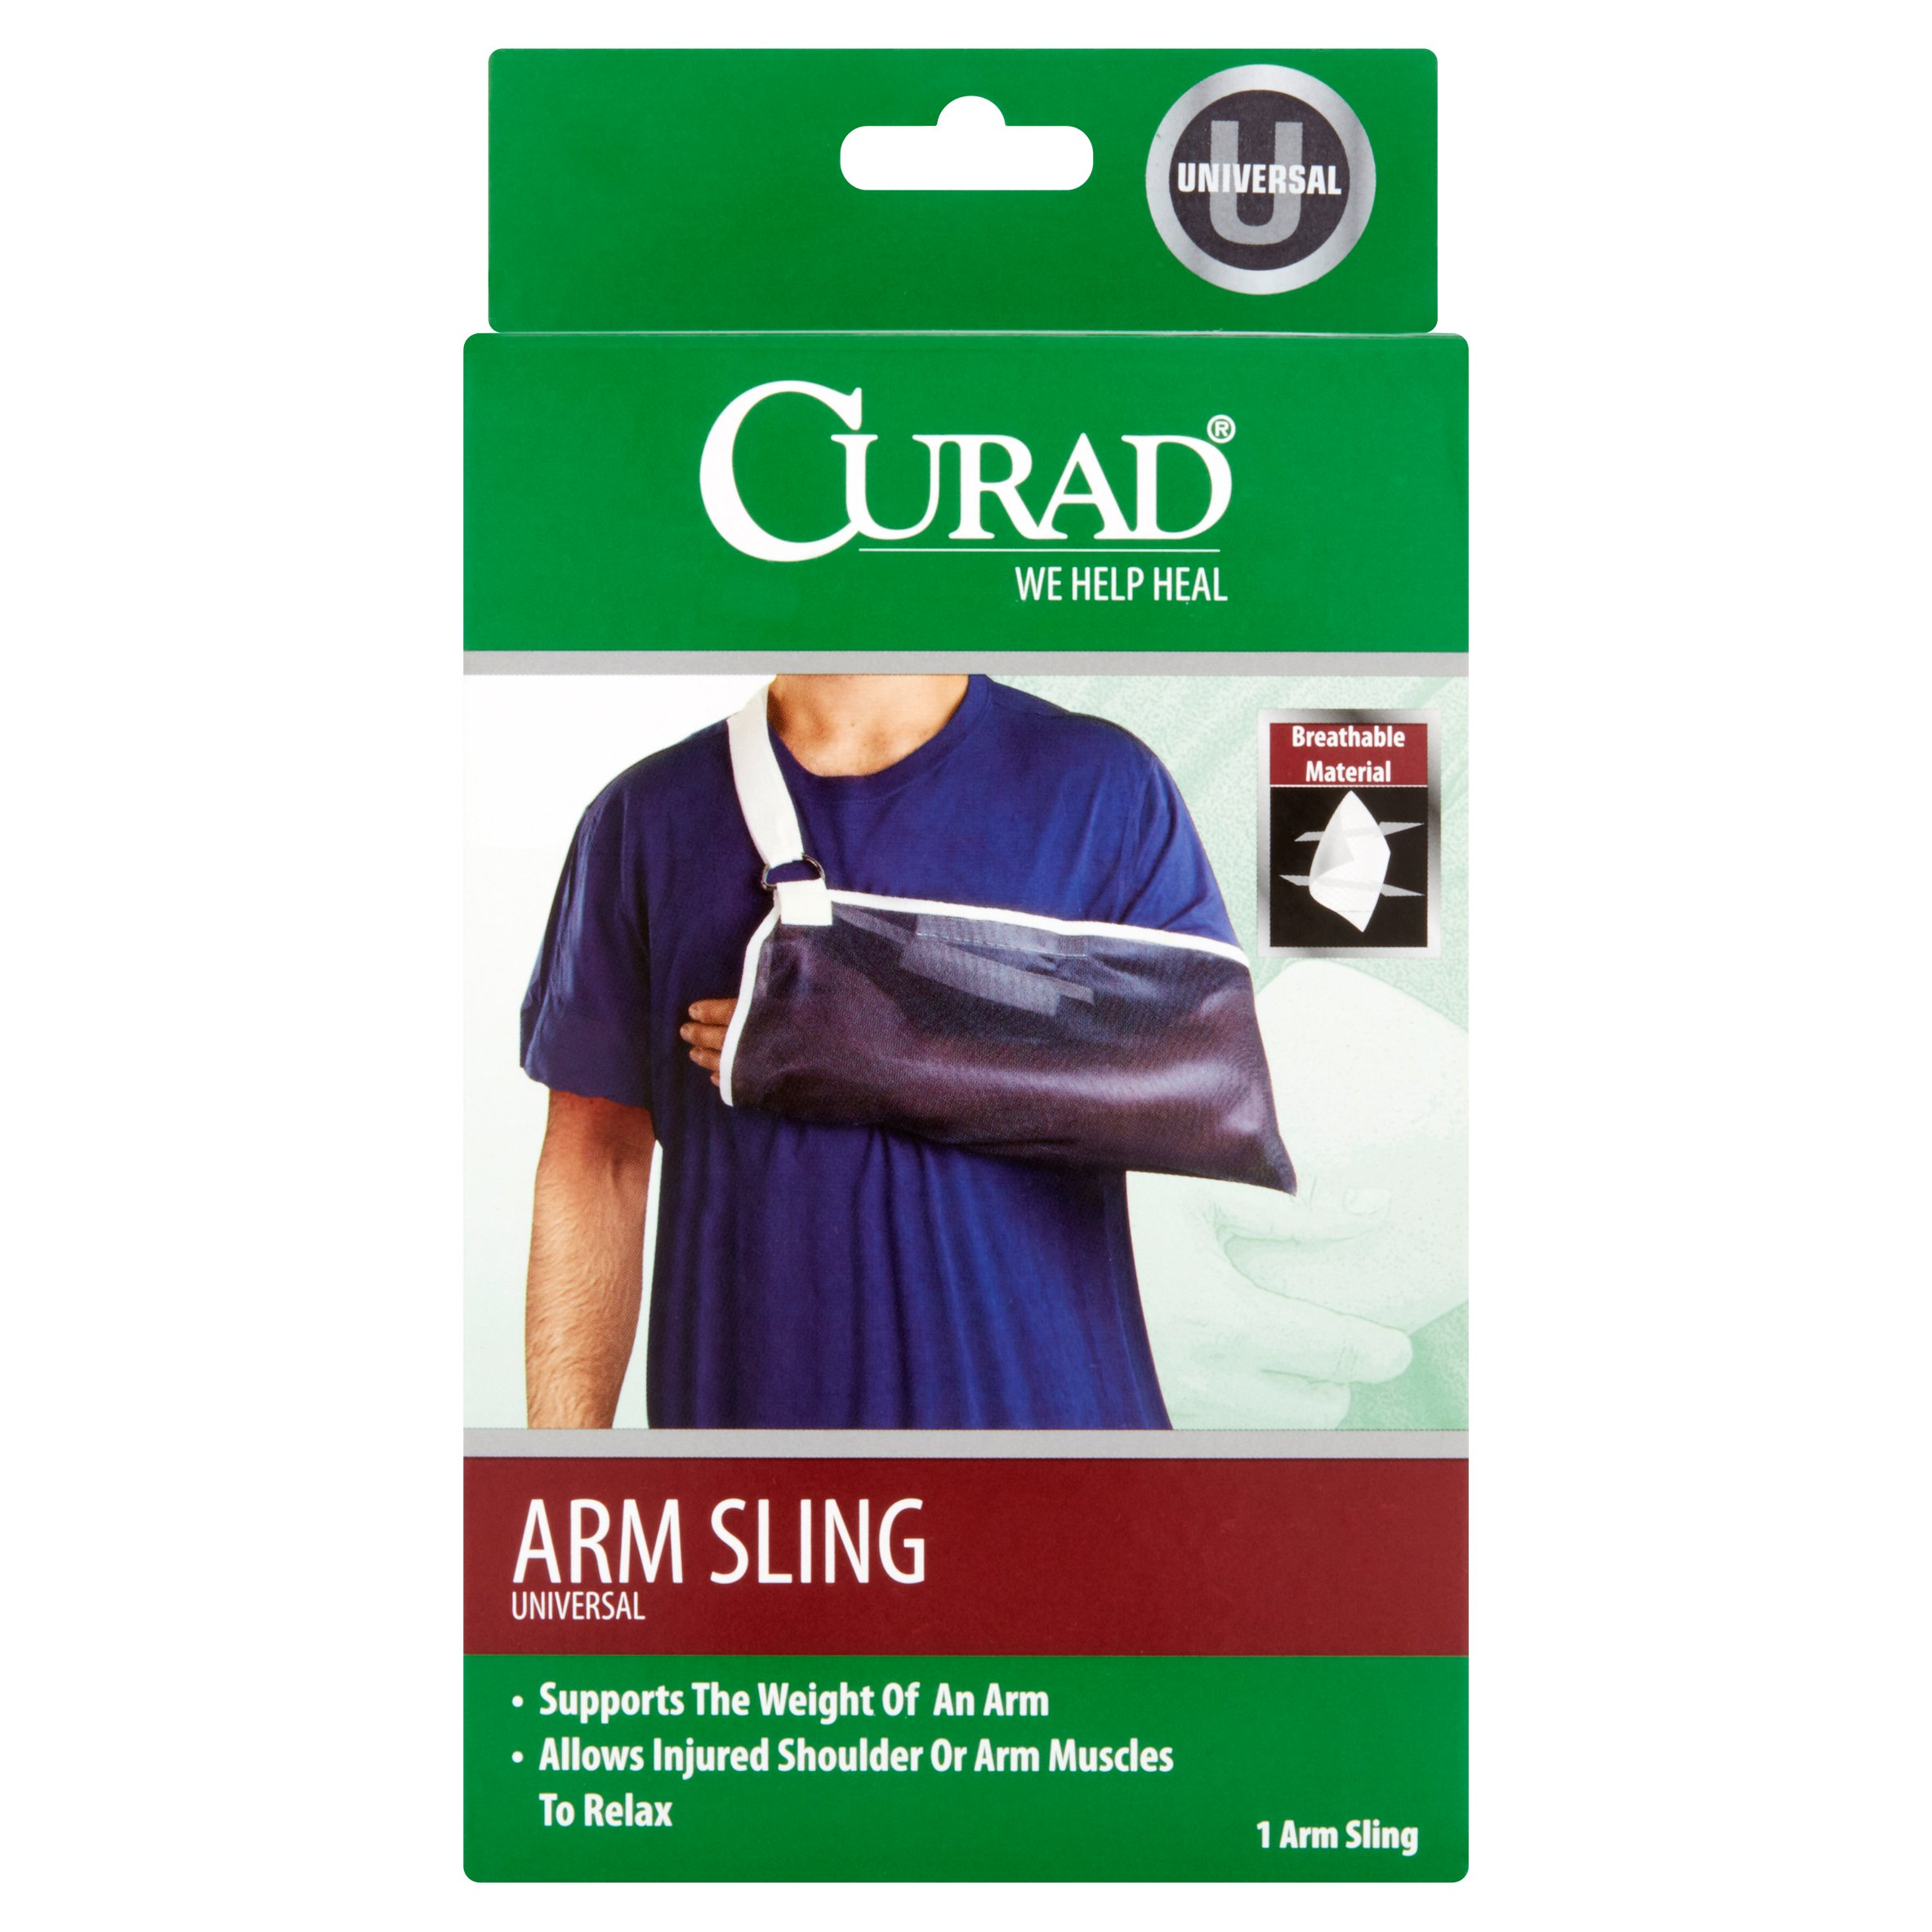 Curad Universal Arm Sling with breathable fabric 1CT